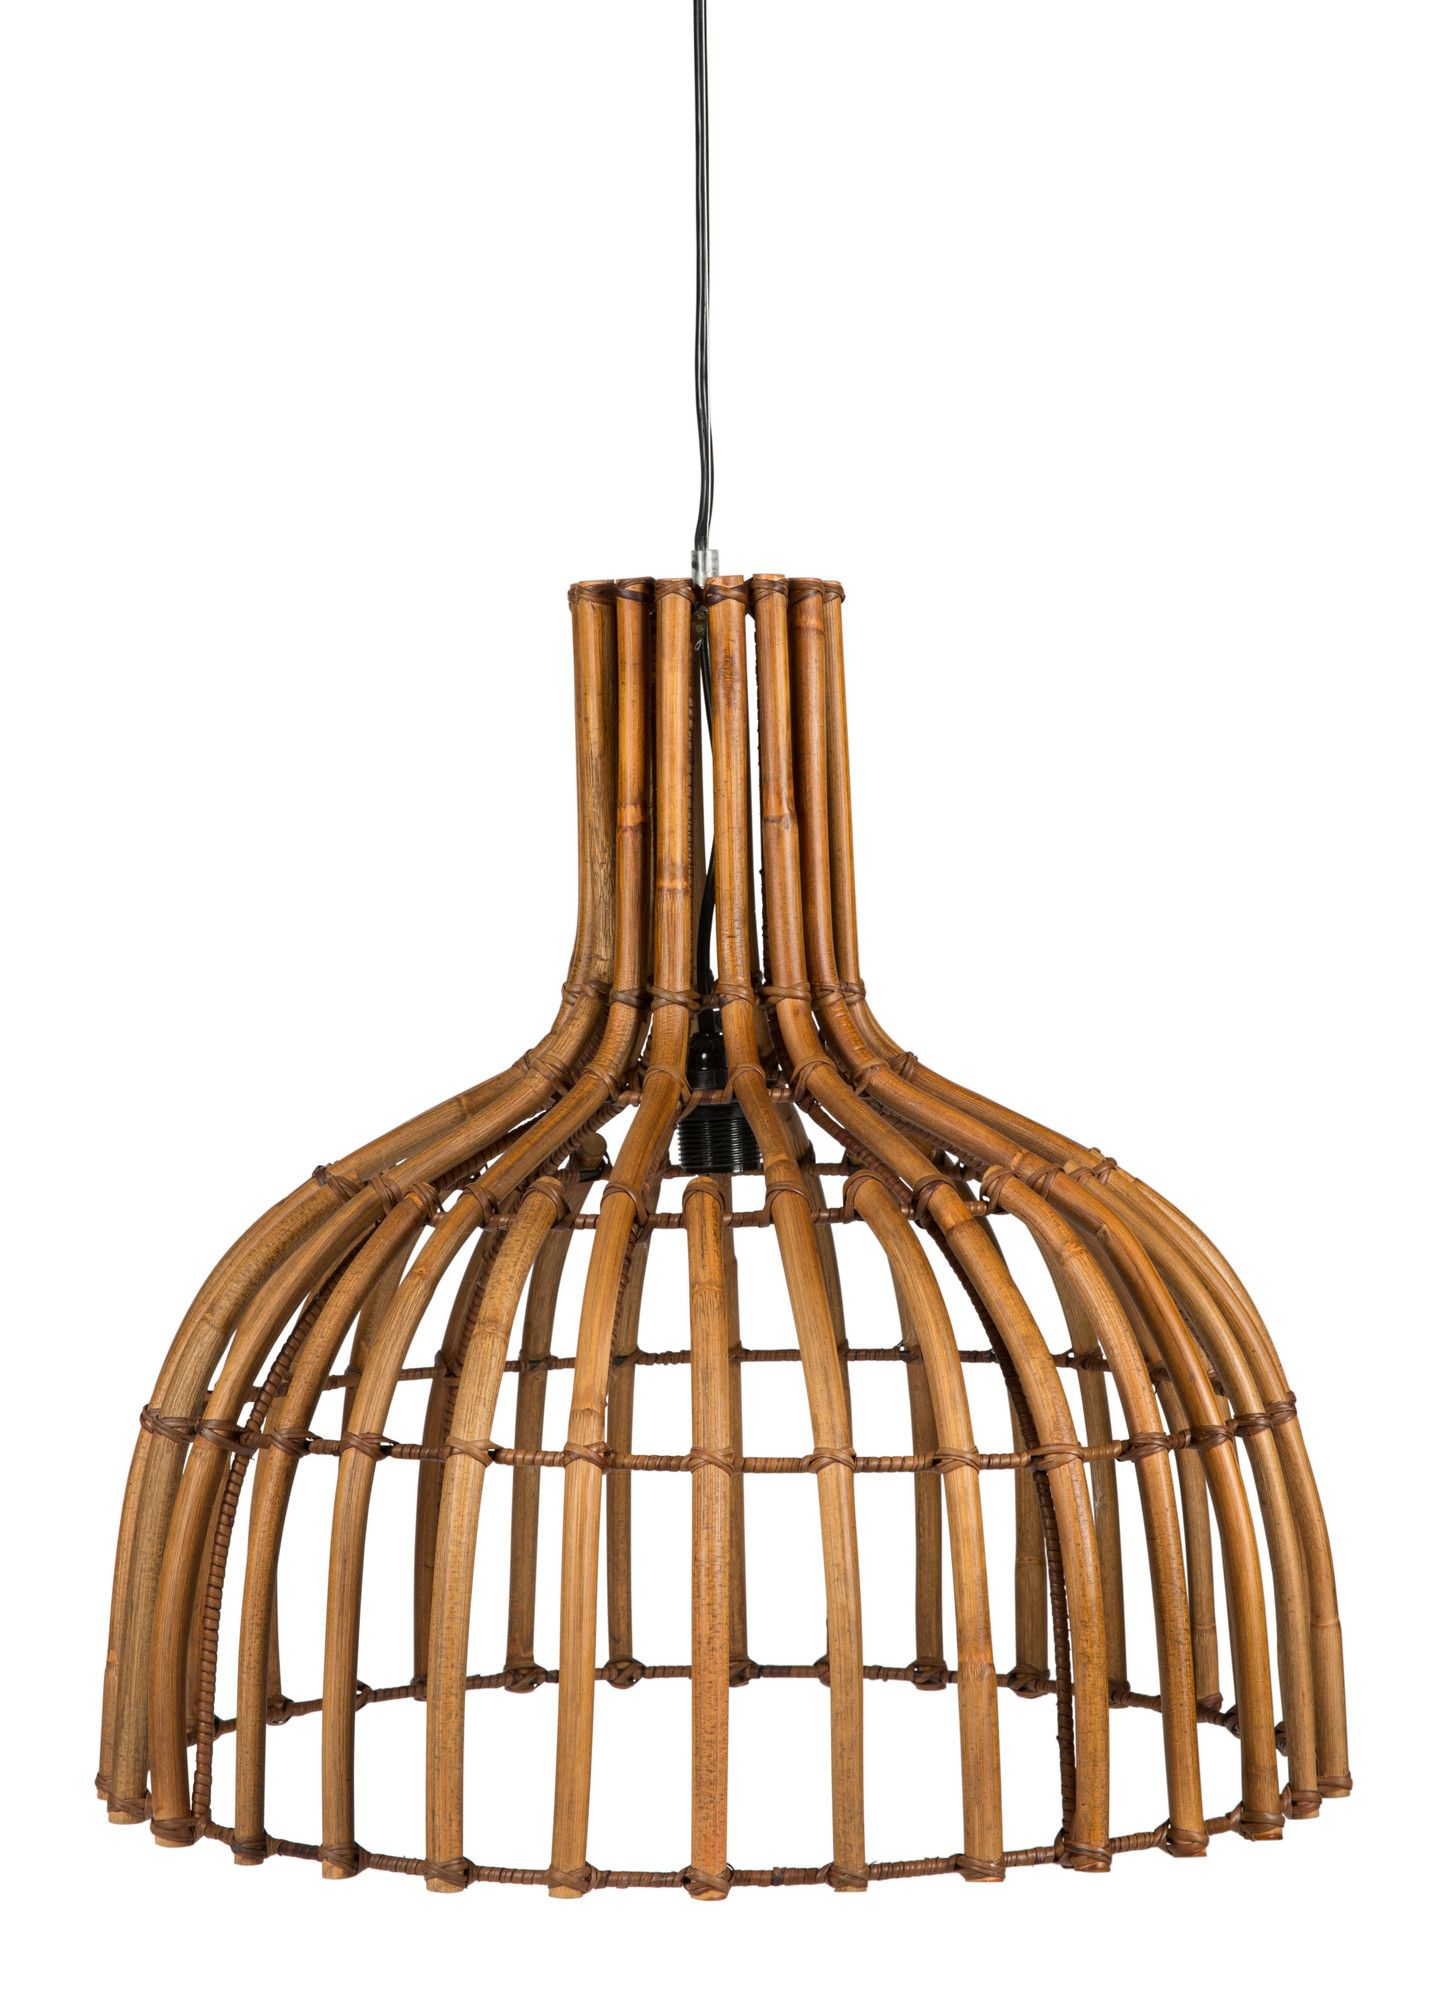 KITCHEN (IN BLACK) Plug Hanging Rattan Lamp By Lifestyle Traders. Get It Now